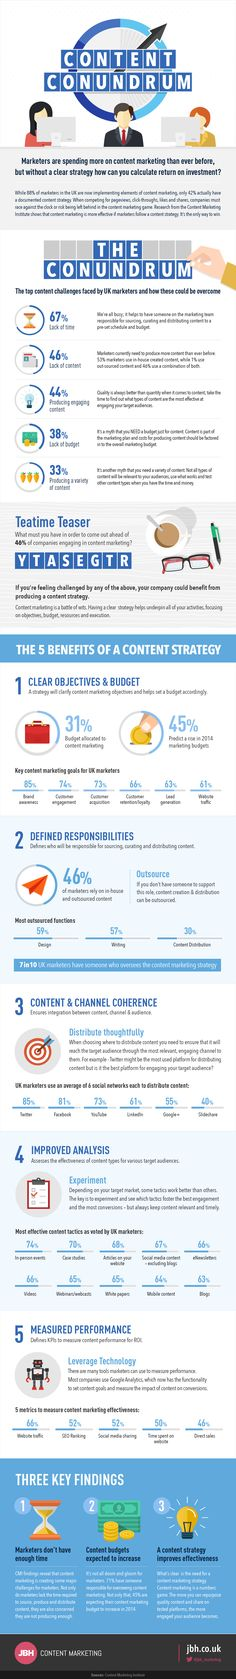 The Content Marketing Conundrum - #infographic #contentmarketing #socialmedia  Content marketing is a battle of wits. Having a clear strategy helps underpin all of your activities, focusing on objectives, budget, resources and execution. This infographic outlined the main content marketing challenges and offered guidance on how marketers can overcome them.